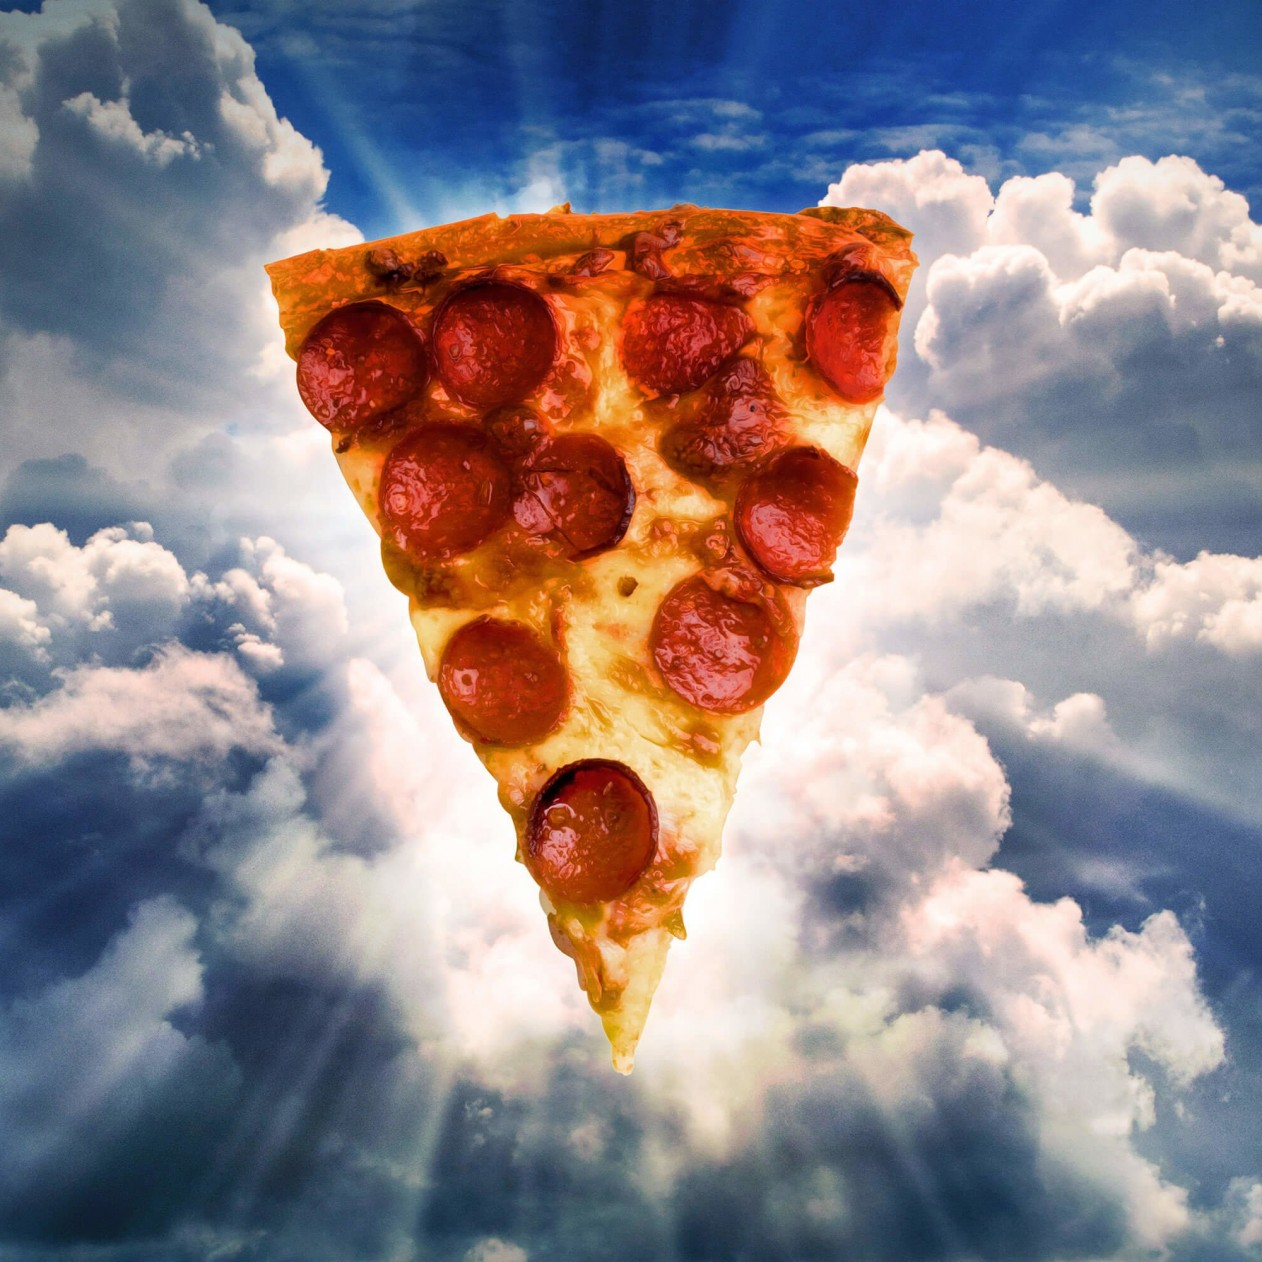 download holy pizza hd wallpaper for ipad mini